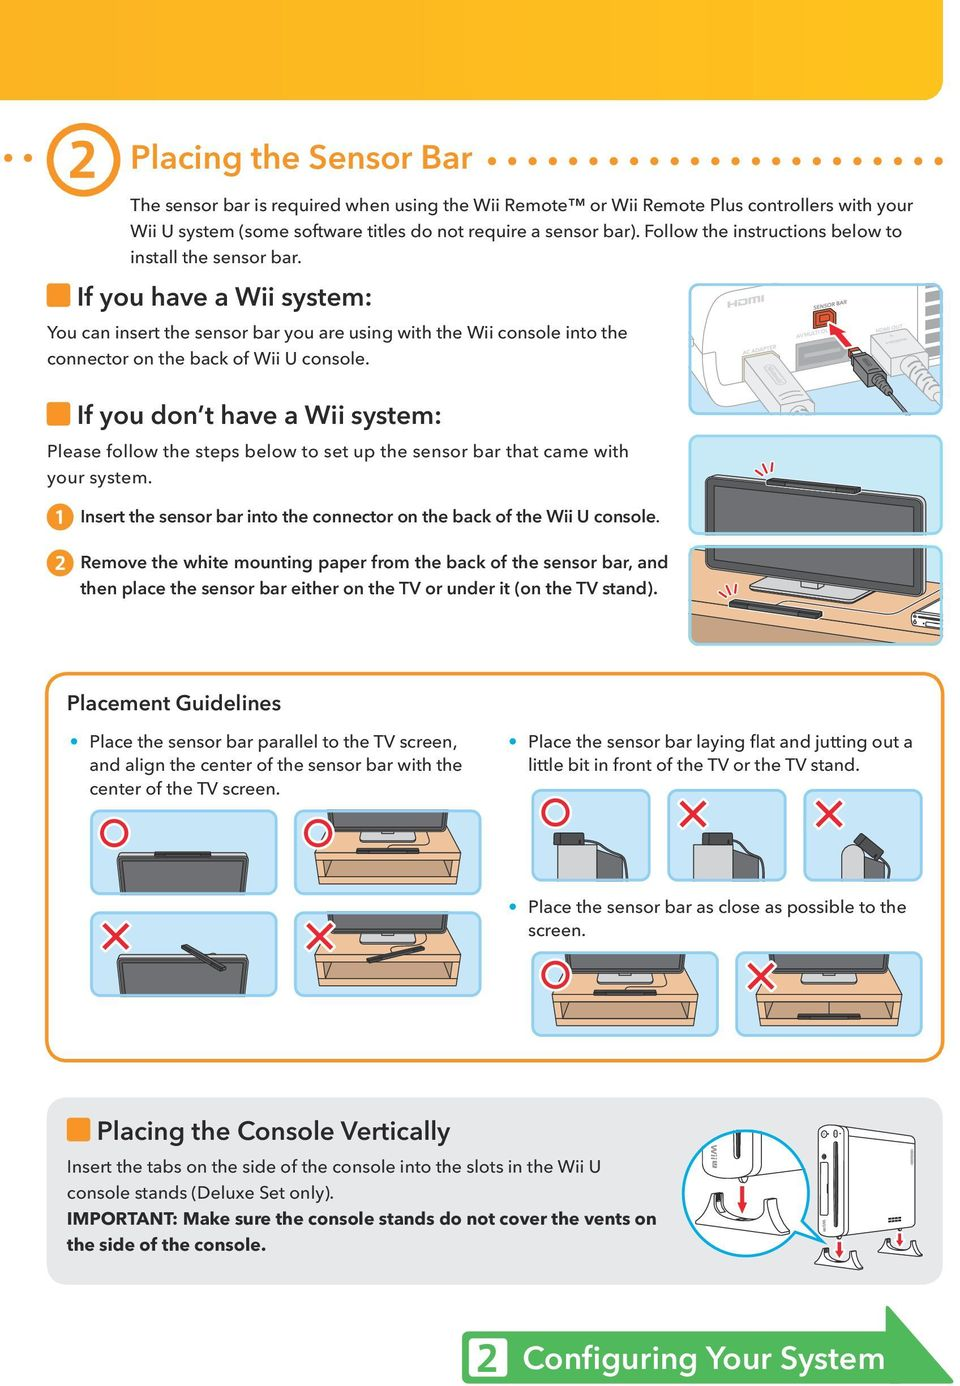 If you don t have a Wii system: Please follow the steps below to set up the sensor bar that came with your system. Insert the sensor bar into the connector on the back of the Wii U console.